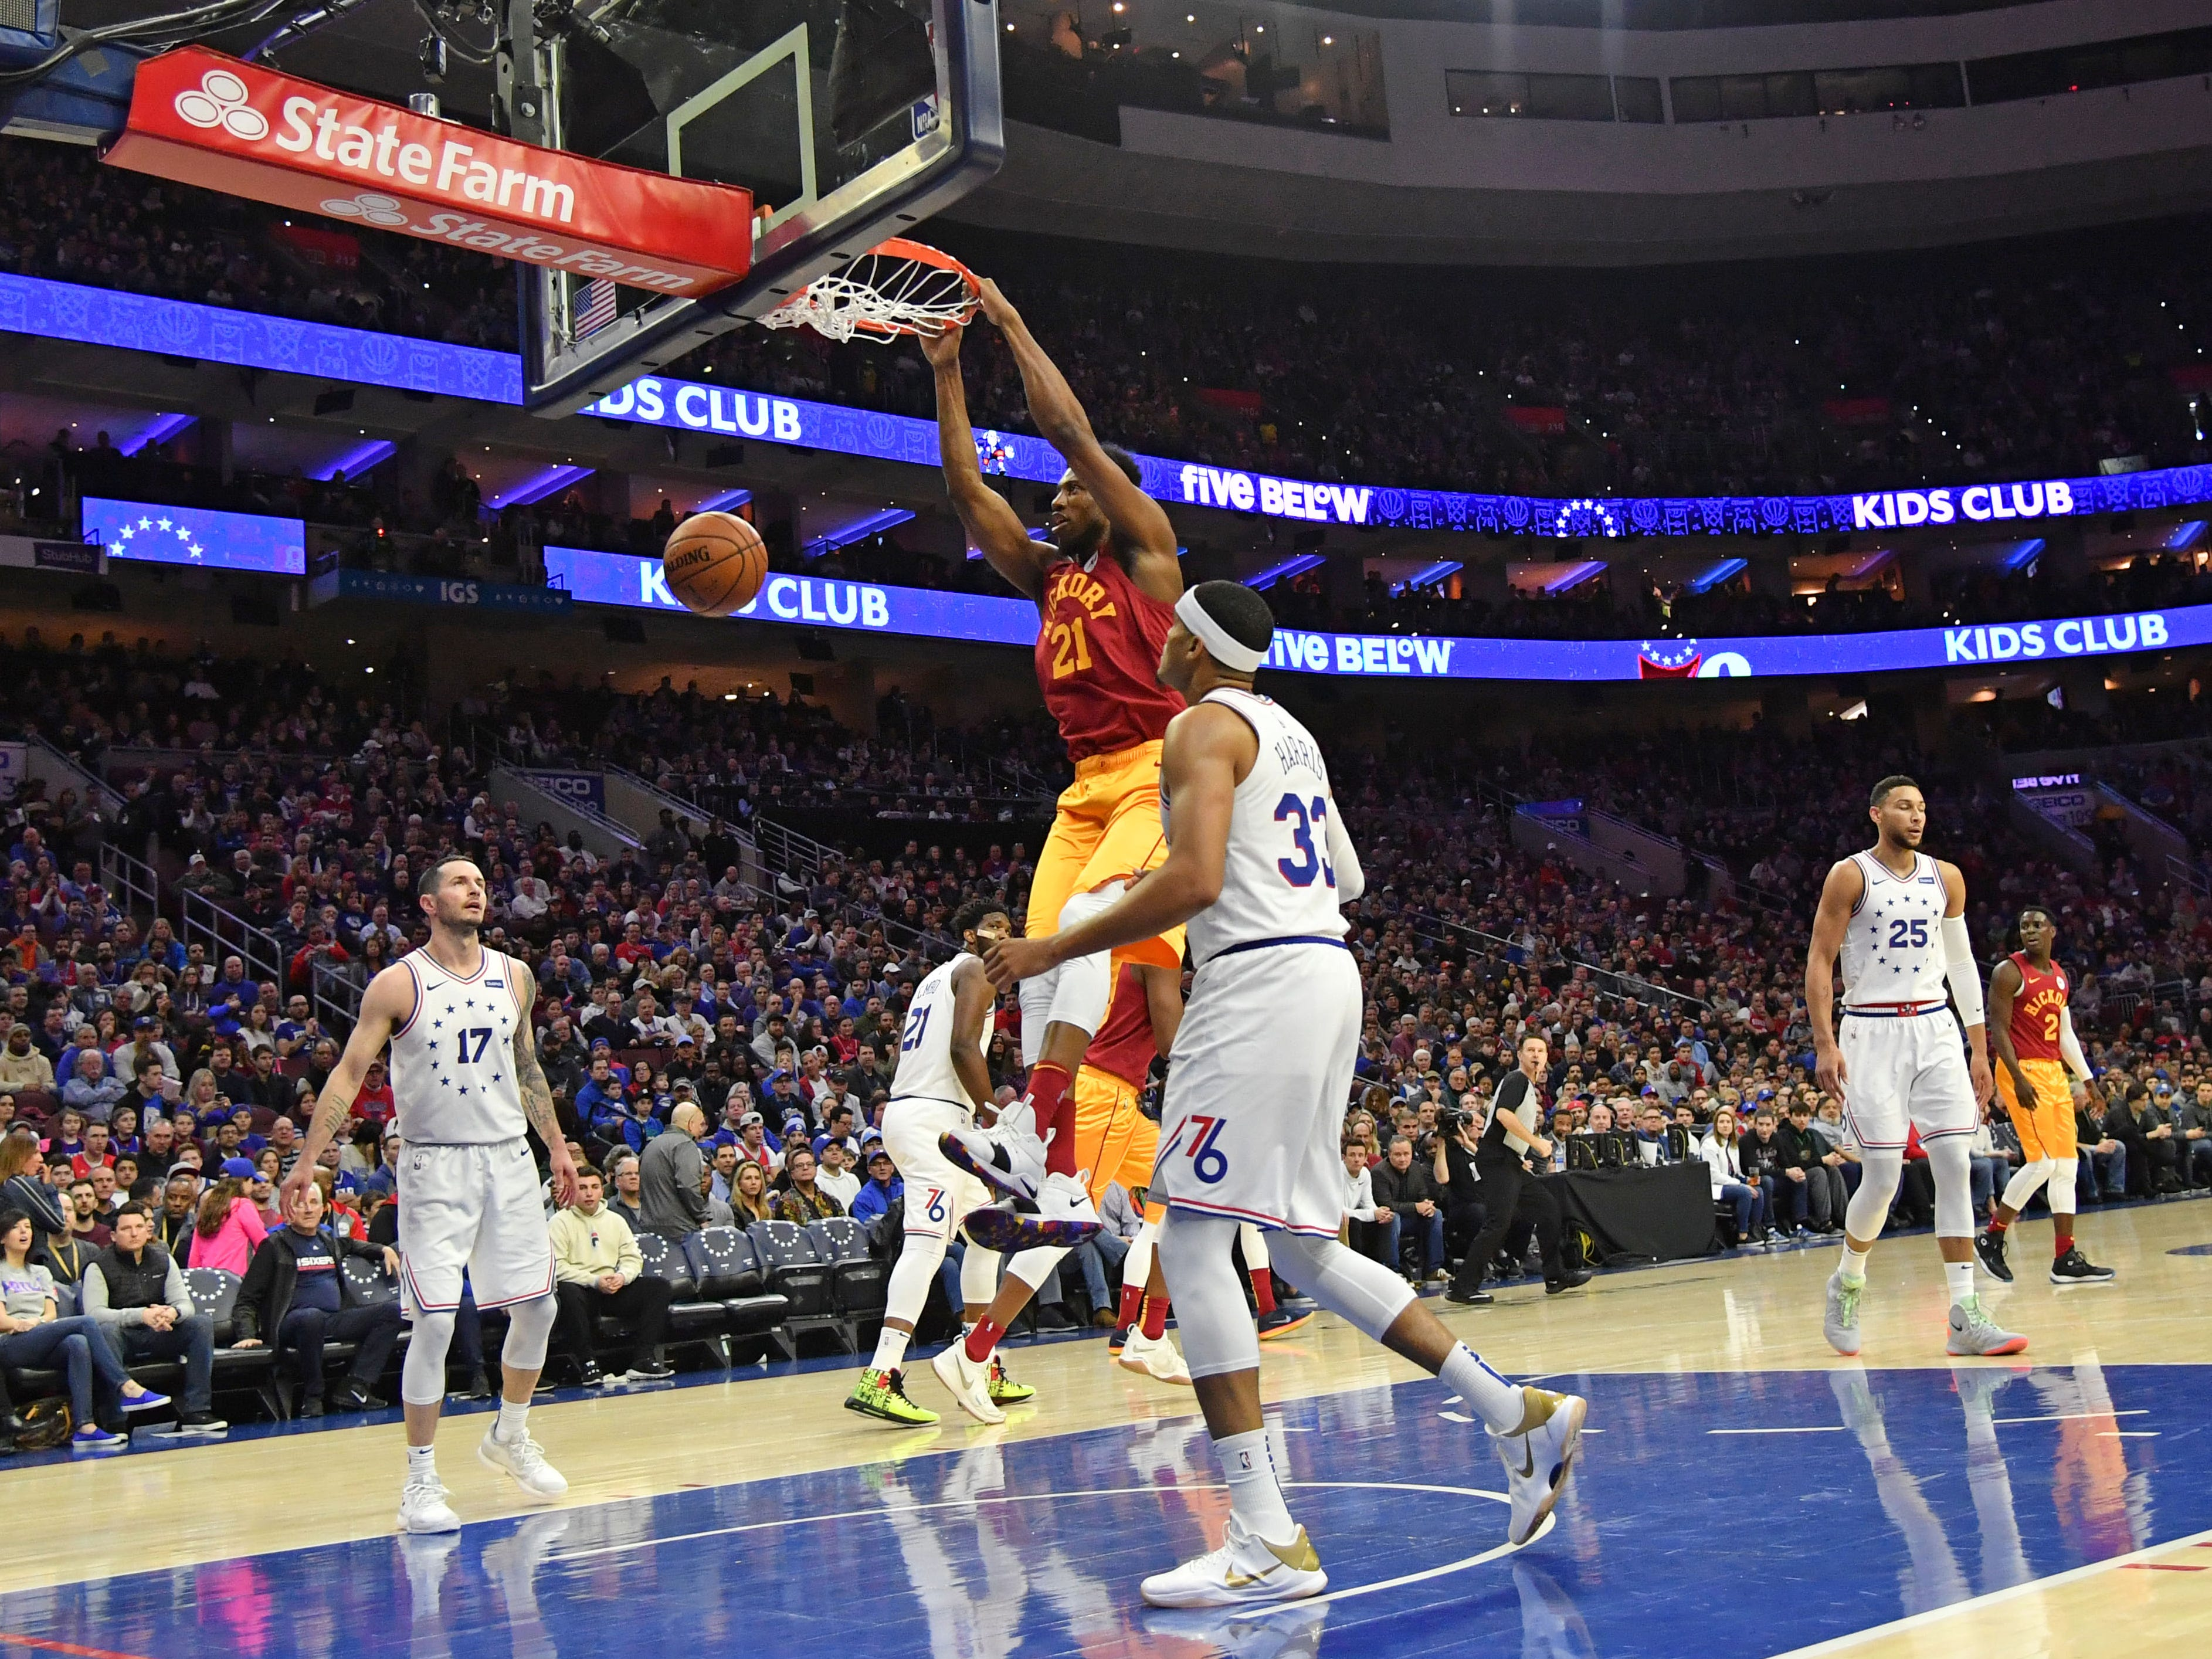 Mar 10, 2019; Philadelphia, PA, USA; Indiana Pacers forward Thaddeus Young (21) dunks against the Philadelphia 76ers during the first quarter at Wells Fargo Center.